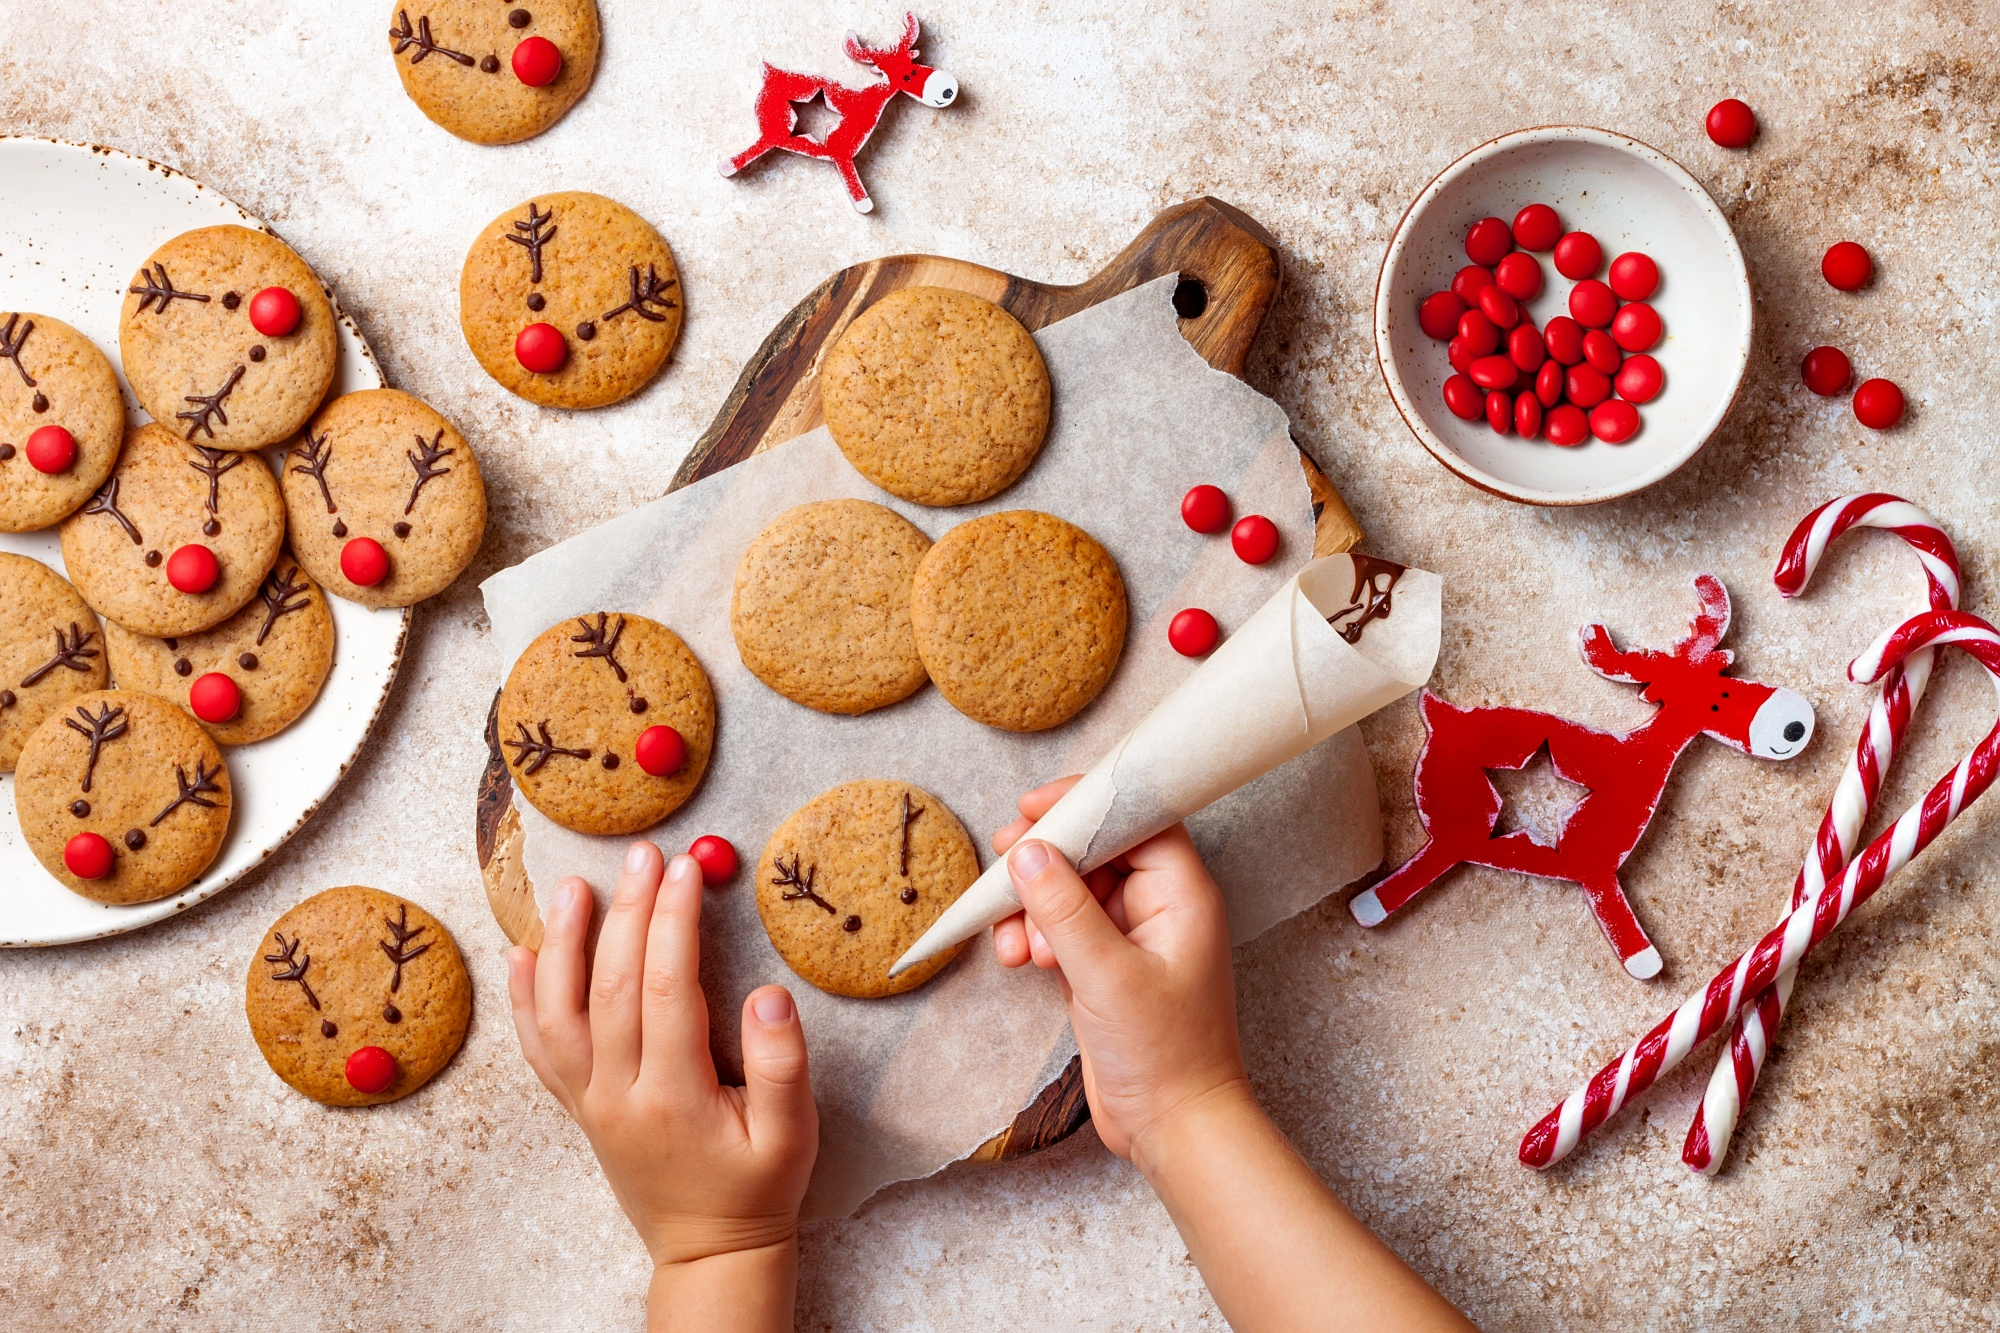 The Best Way To Get Organized Before Holiday Chaos Ensues by remembering to make Christmas traditions a priority like baking reindeer cookies with your kids